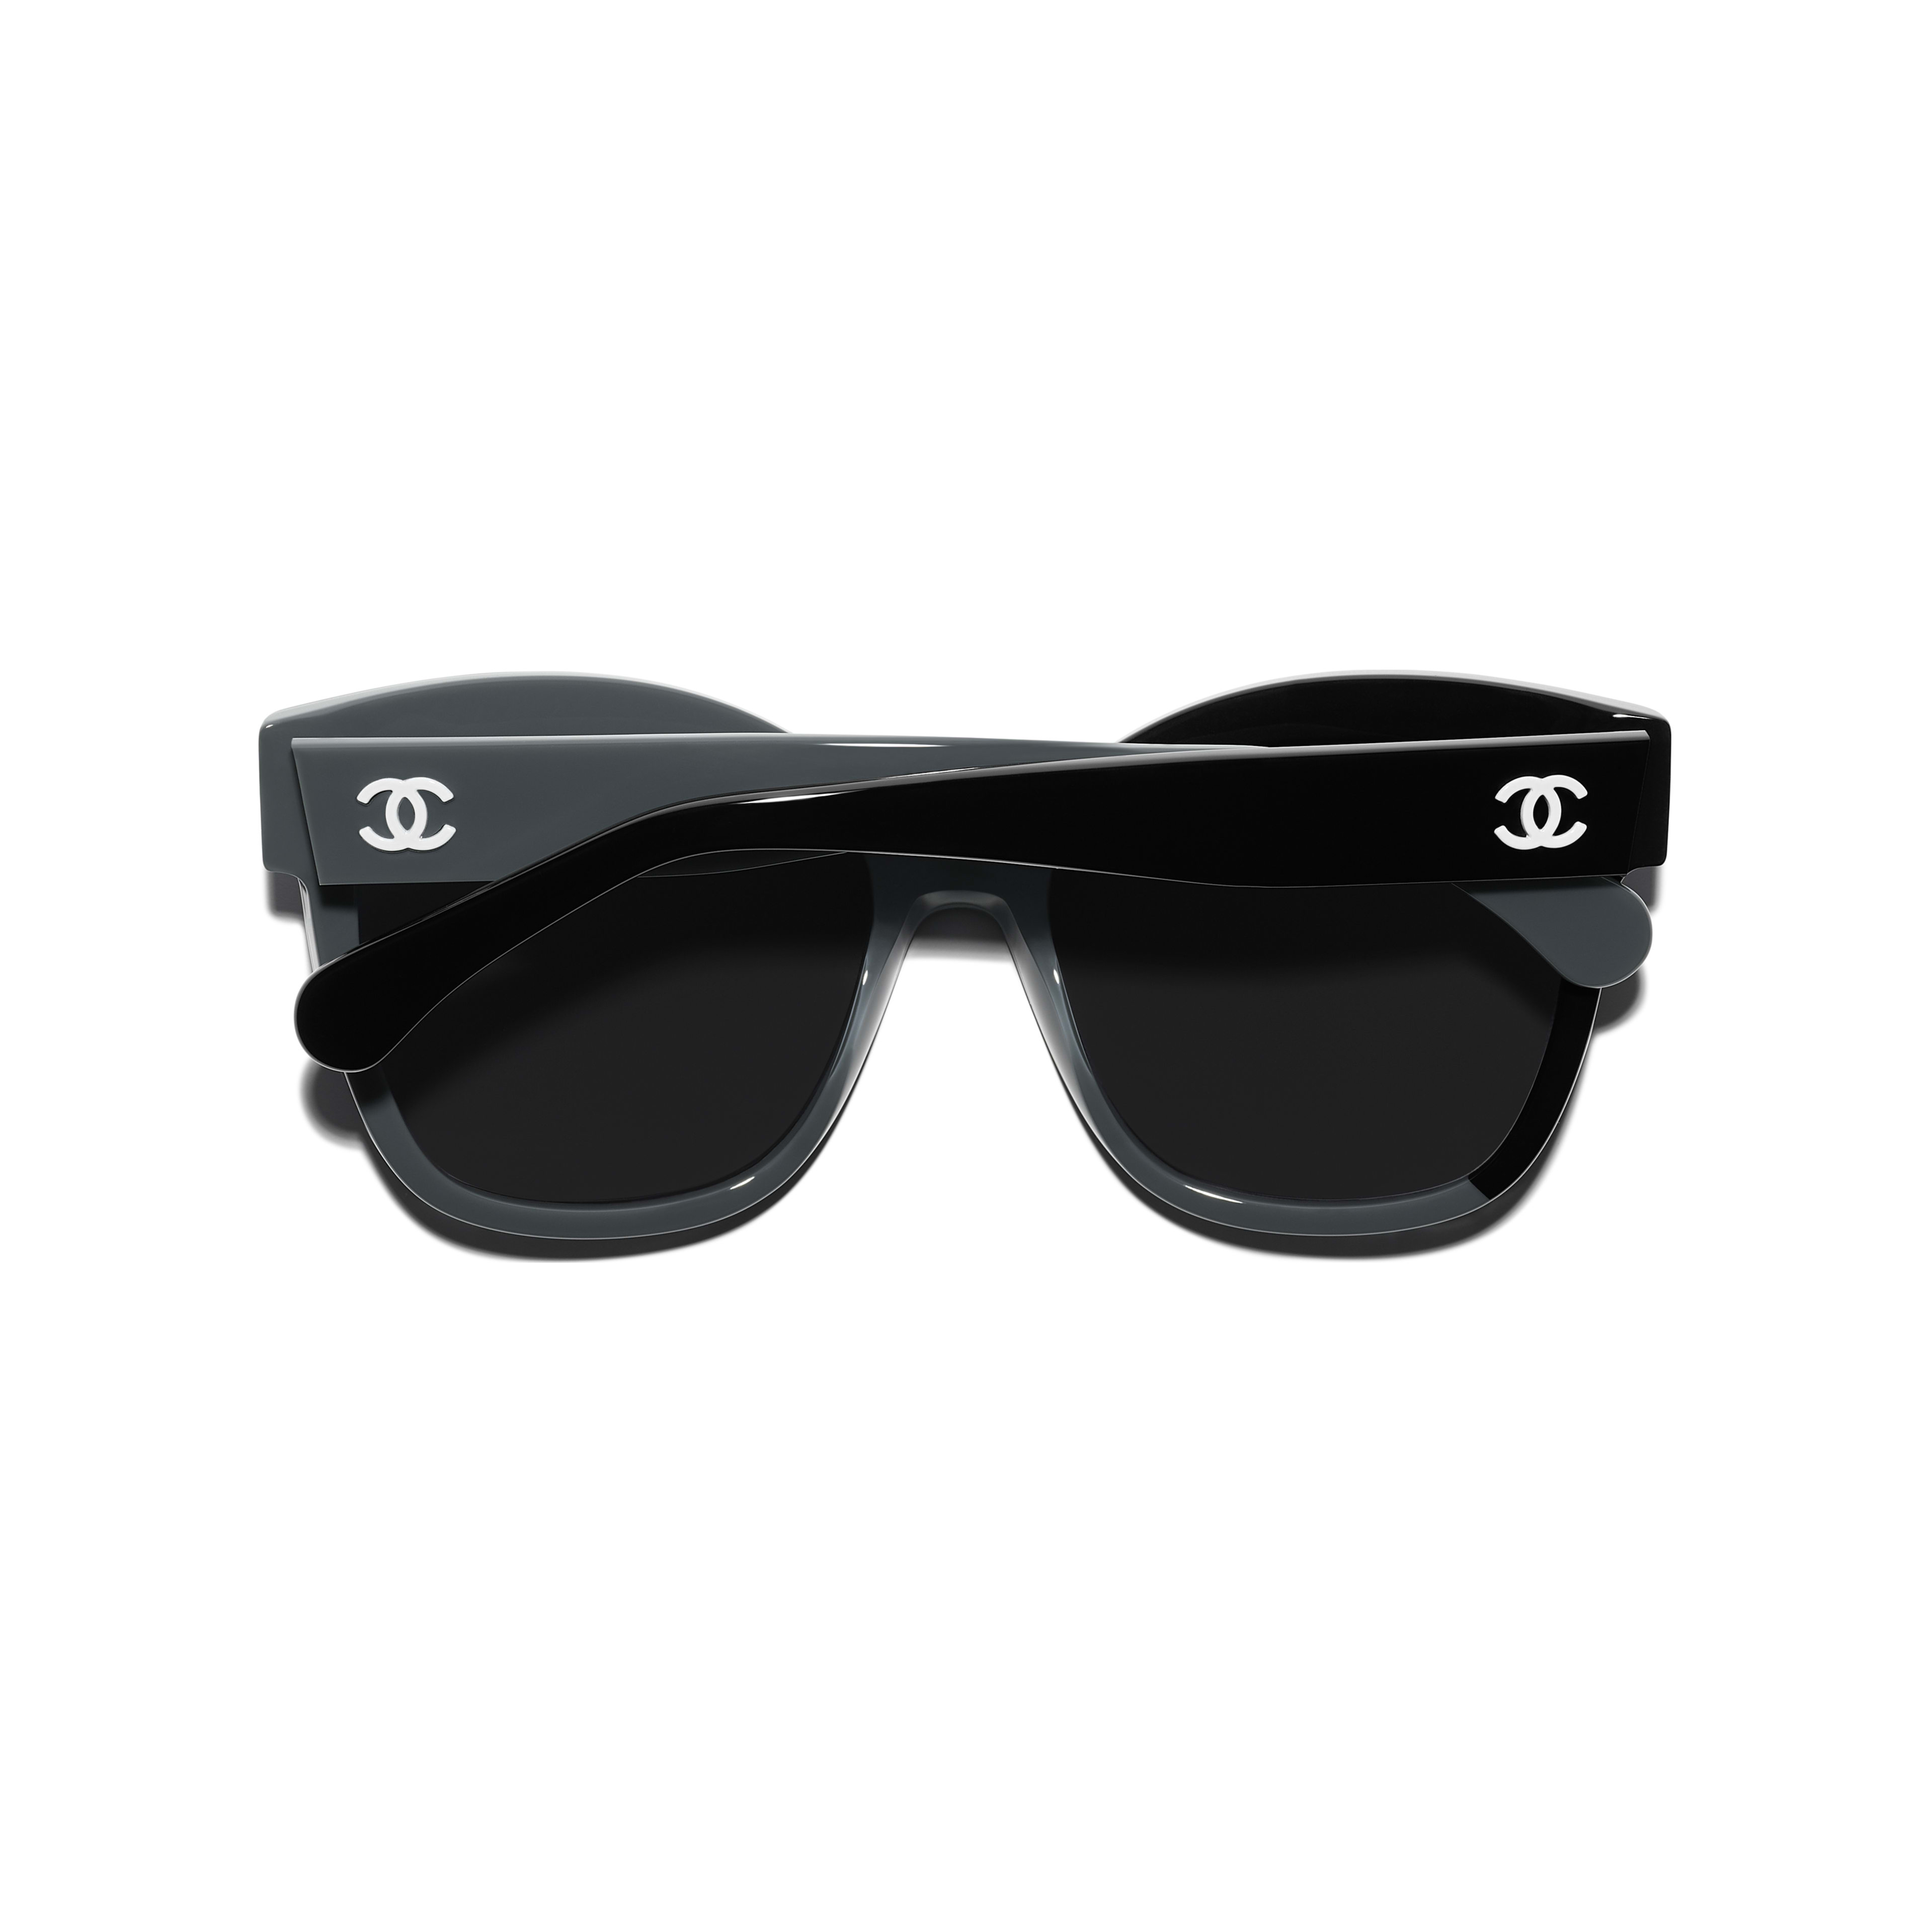 Butterfly Sunglasses - Black & Grey - Acetate - CHANEL - Extra view - see standard sized version